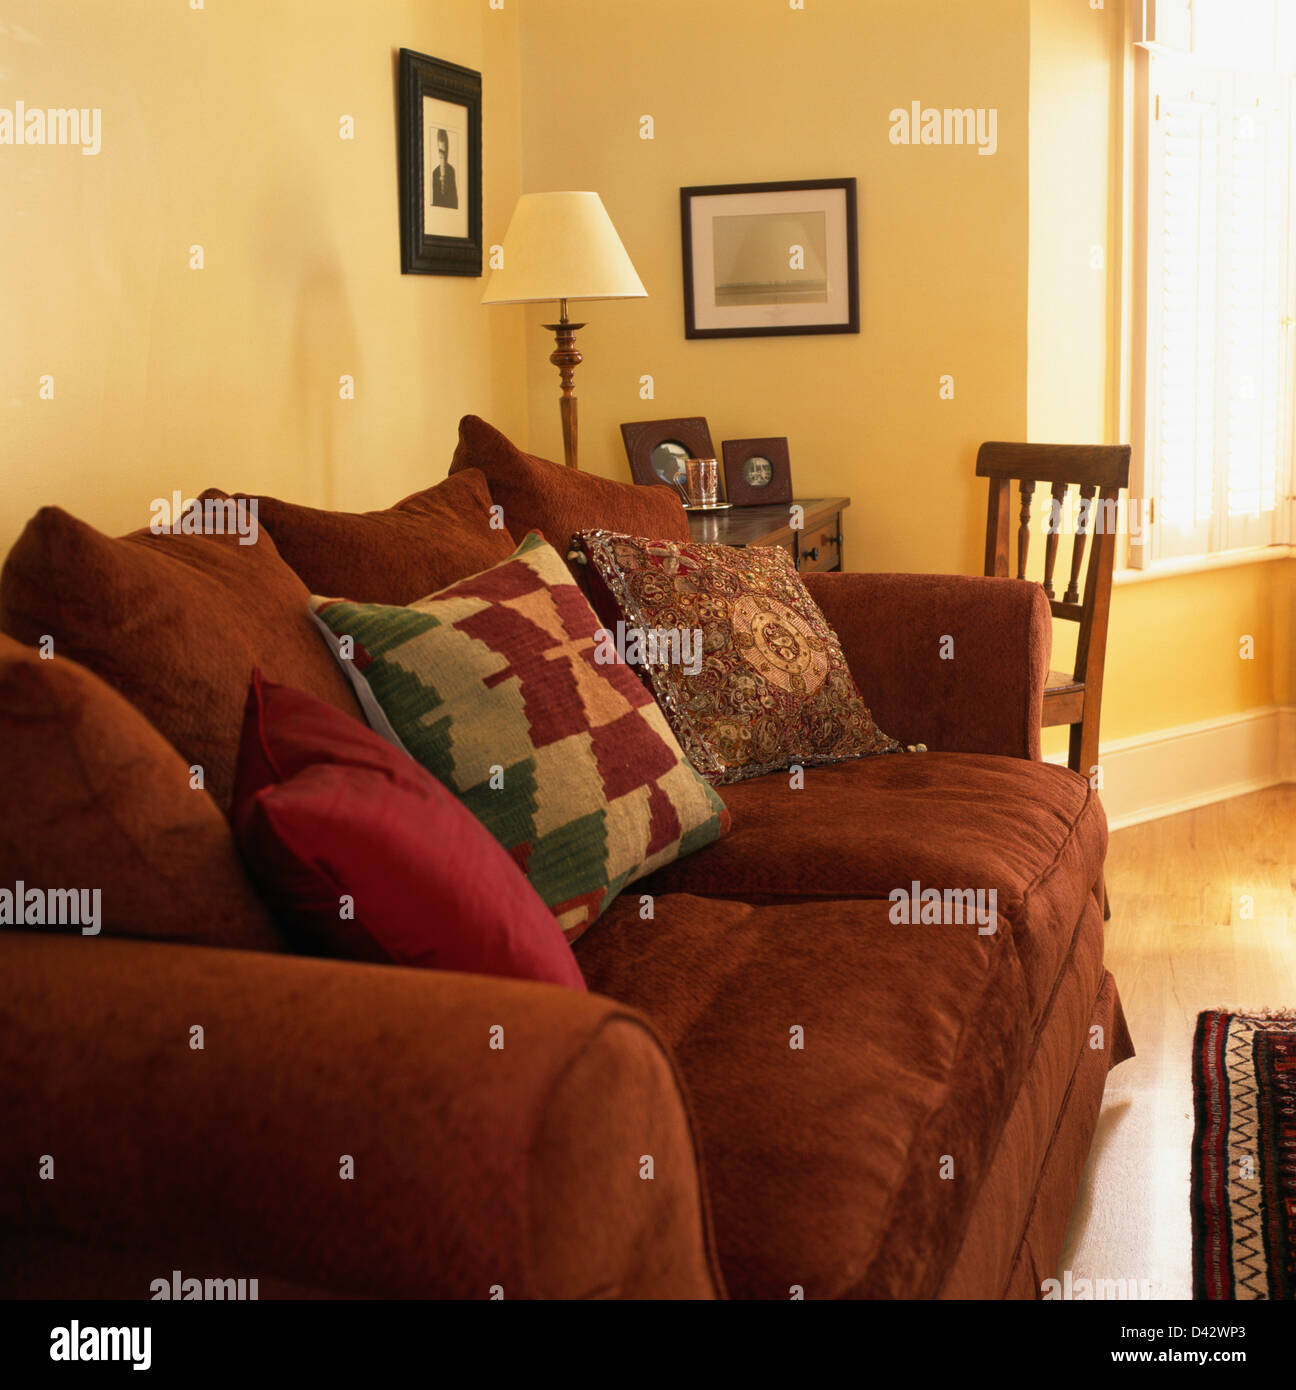 Patterned Cushions On Rust Colored Sofa In Traditional Living Room